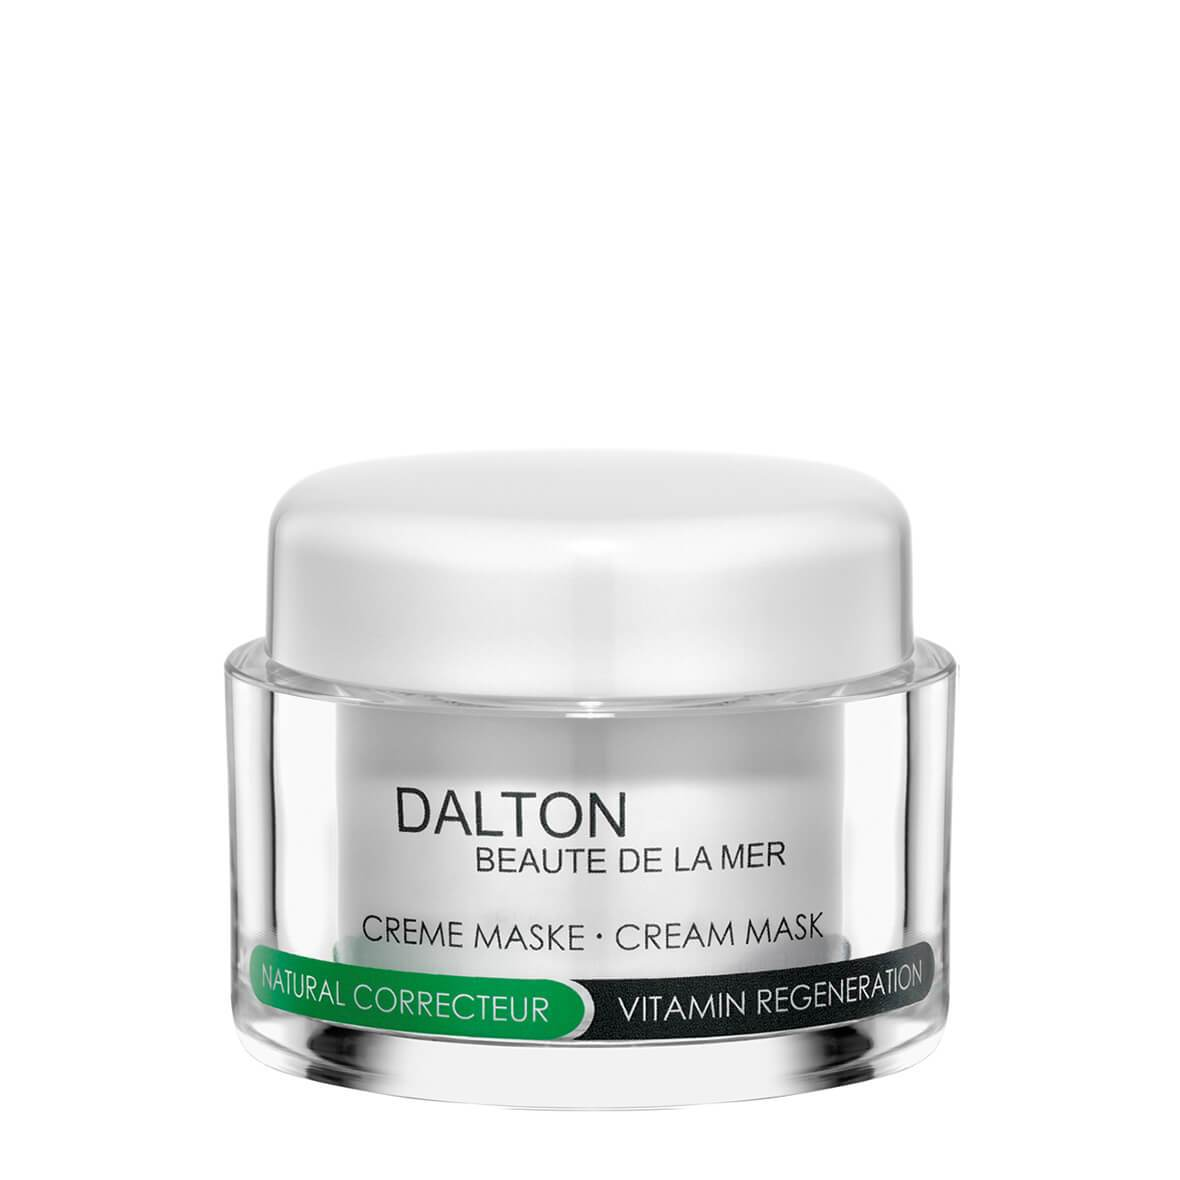 Mască, Natural Correcteur Cream Mask 50ml., Dalton Marine Cosmetics, Era Cosmetics